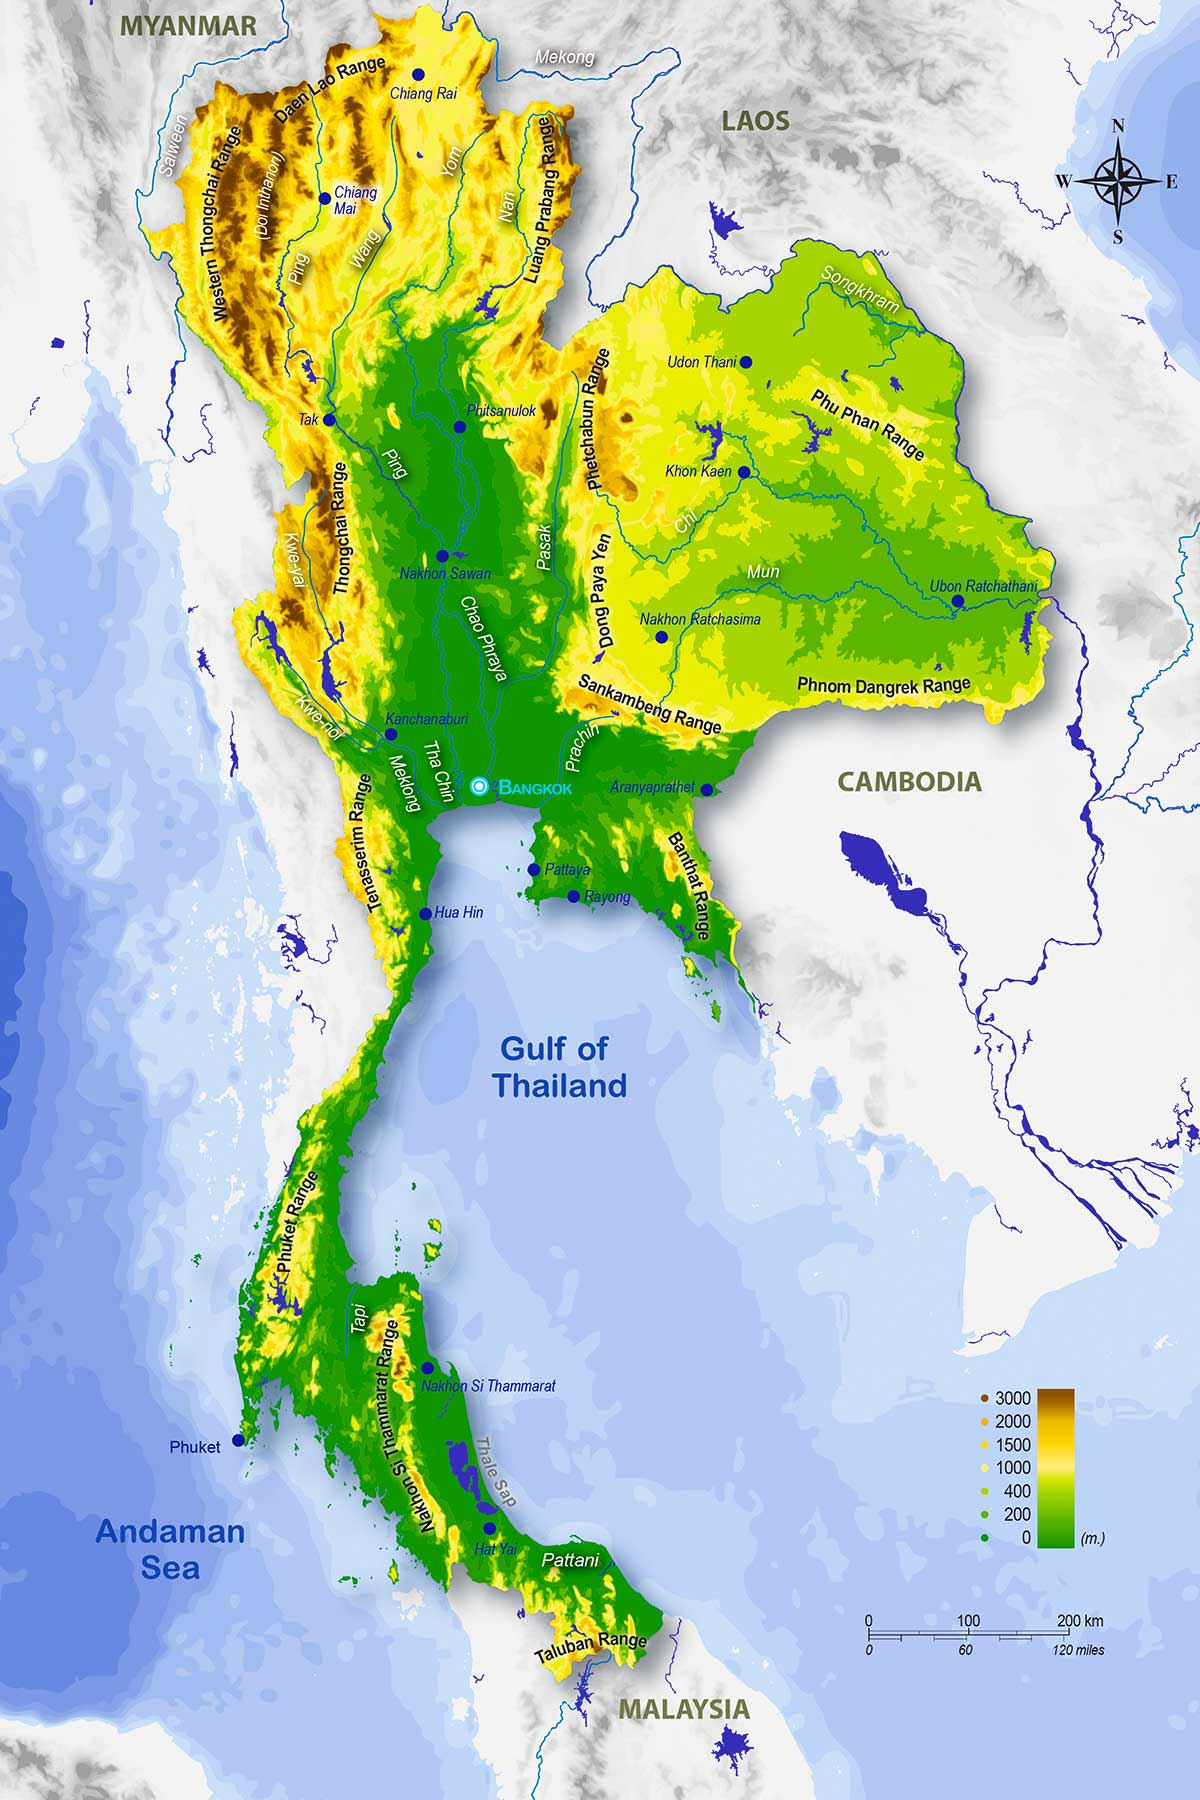 Thailand Physical Geography Map © - Dr Steven Andrew Martin - Thai Studies Research